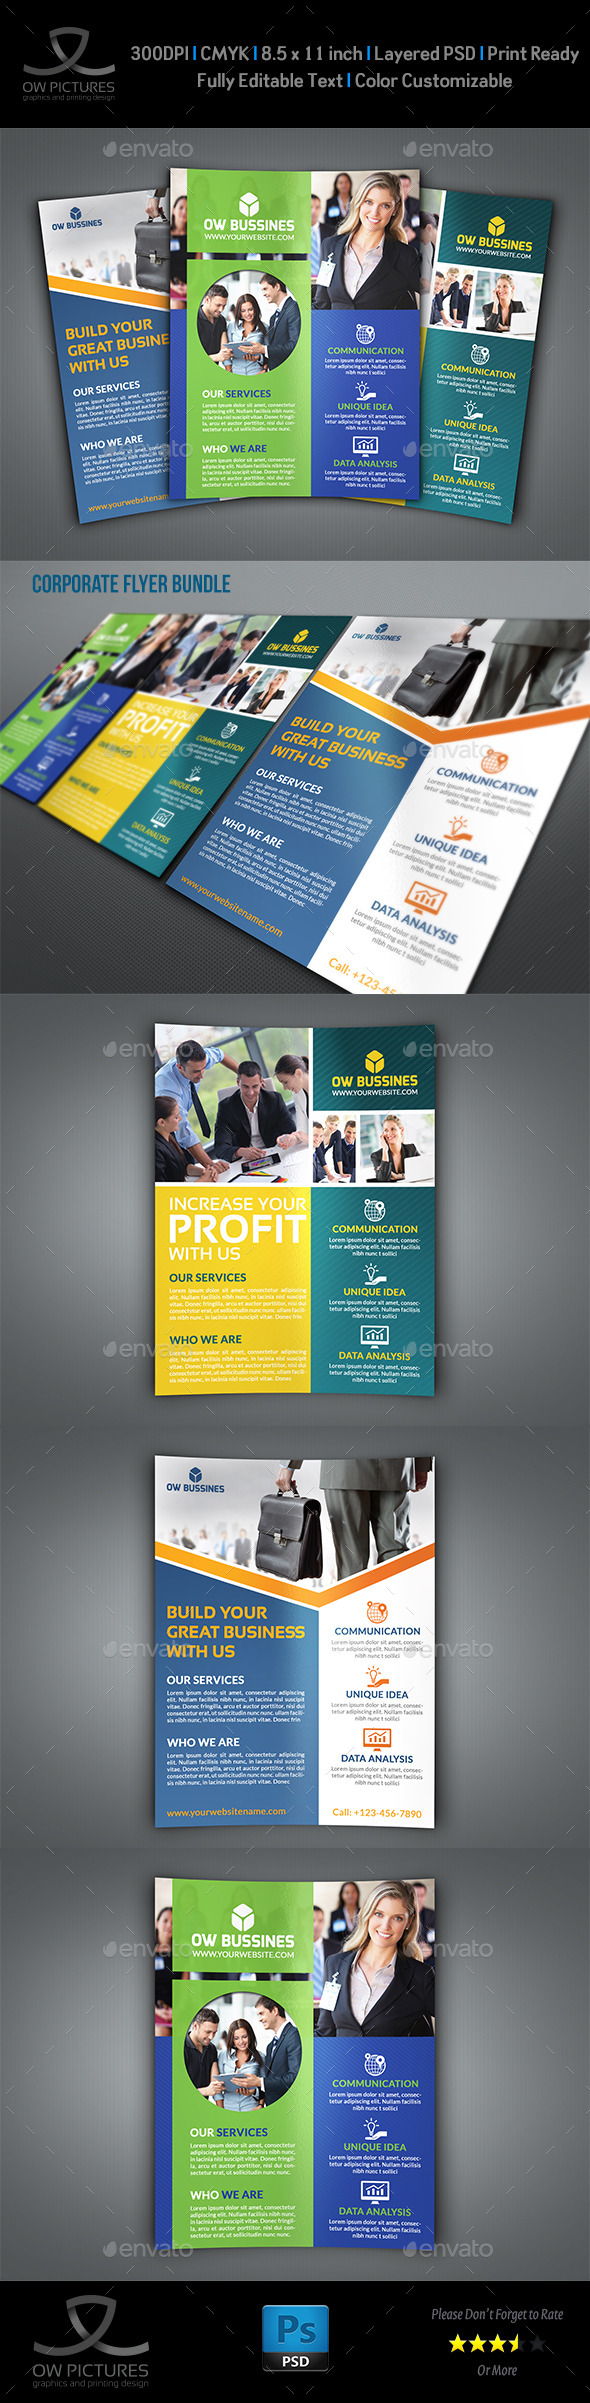 Corporate Flyer Bundle Template Vol.5 - Flyers Print Templates